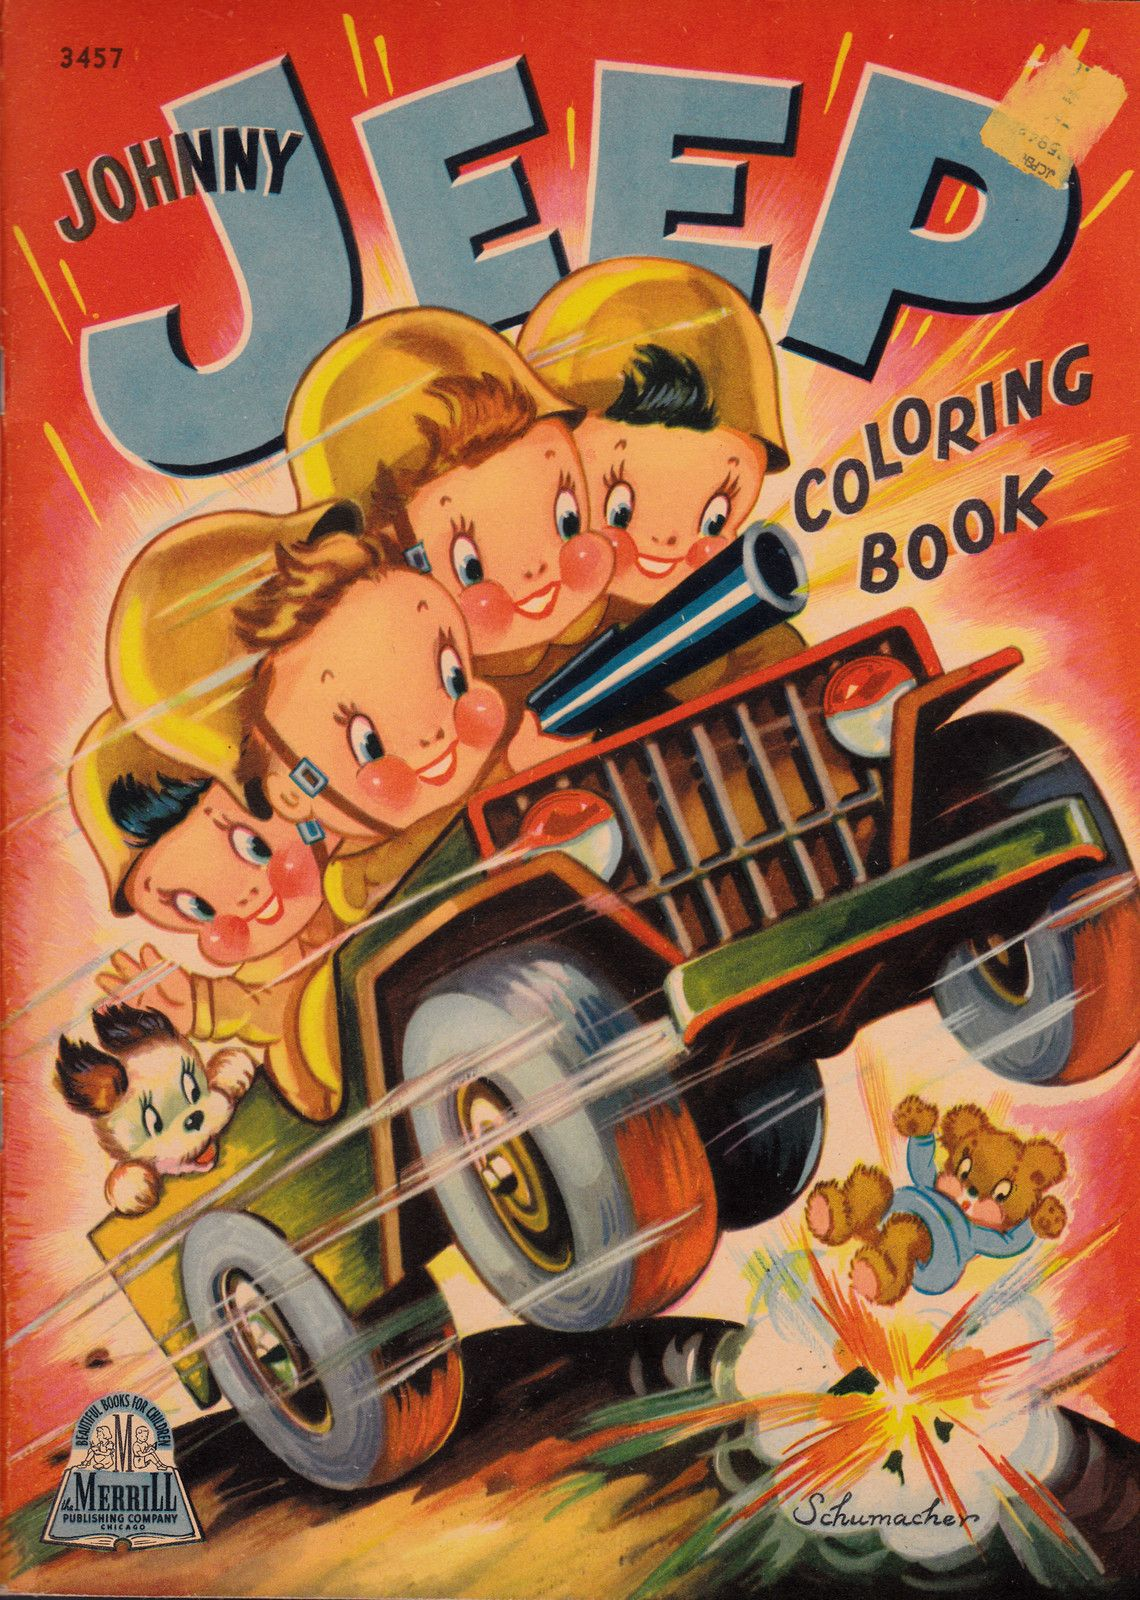 Merrill Publishing Company 1943 Vintage Coloring Books Coloring Books Painted Books